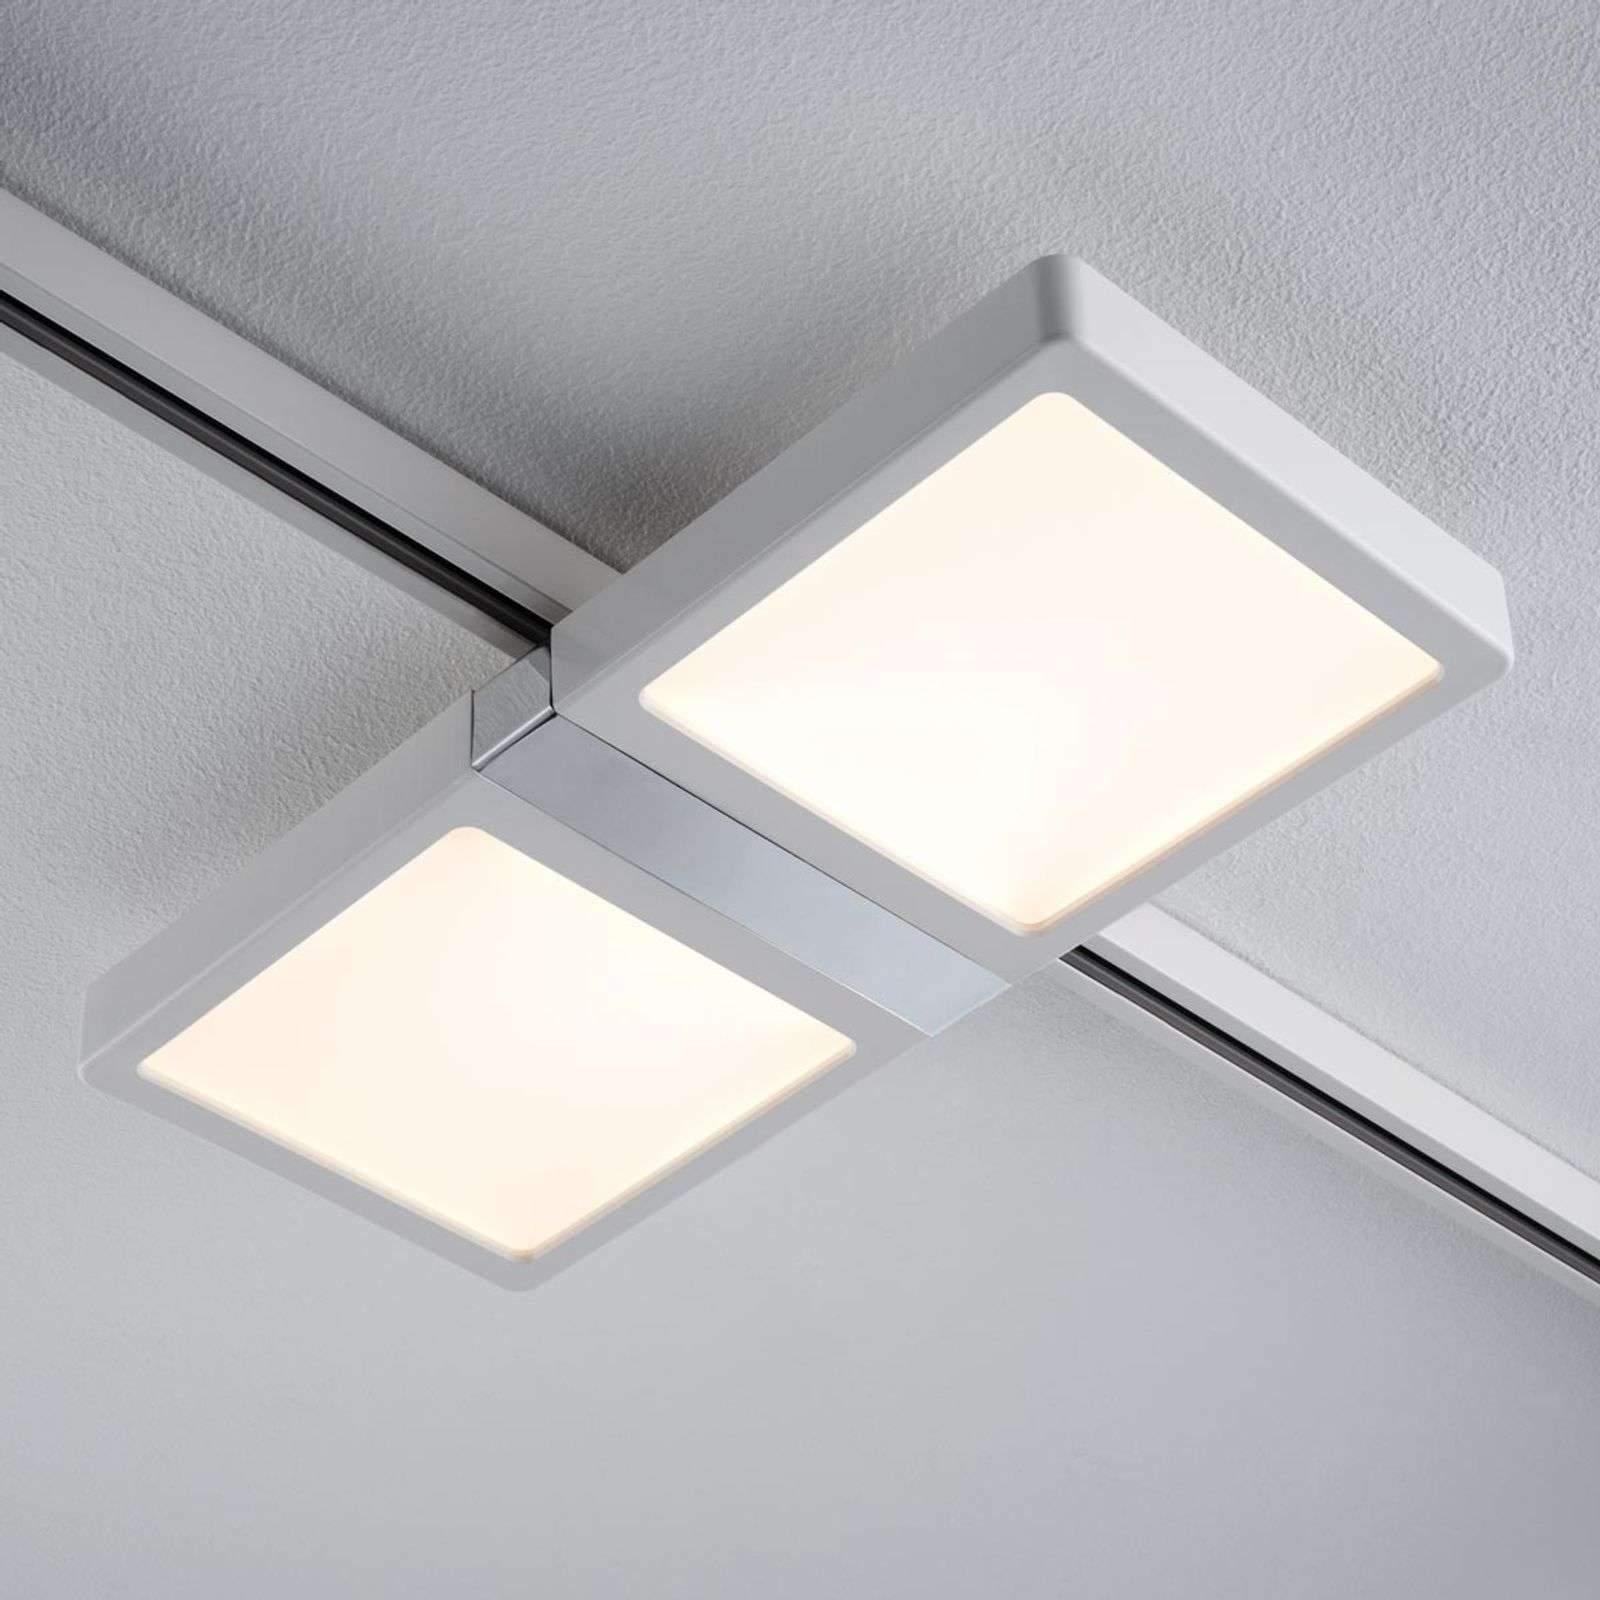 LED Panel Double bianco per 1-URail